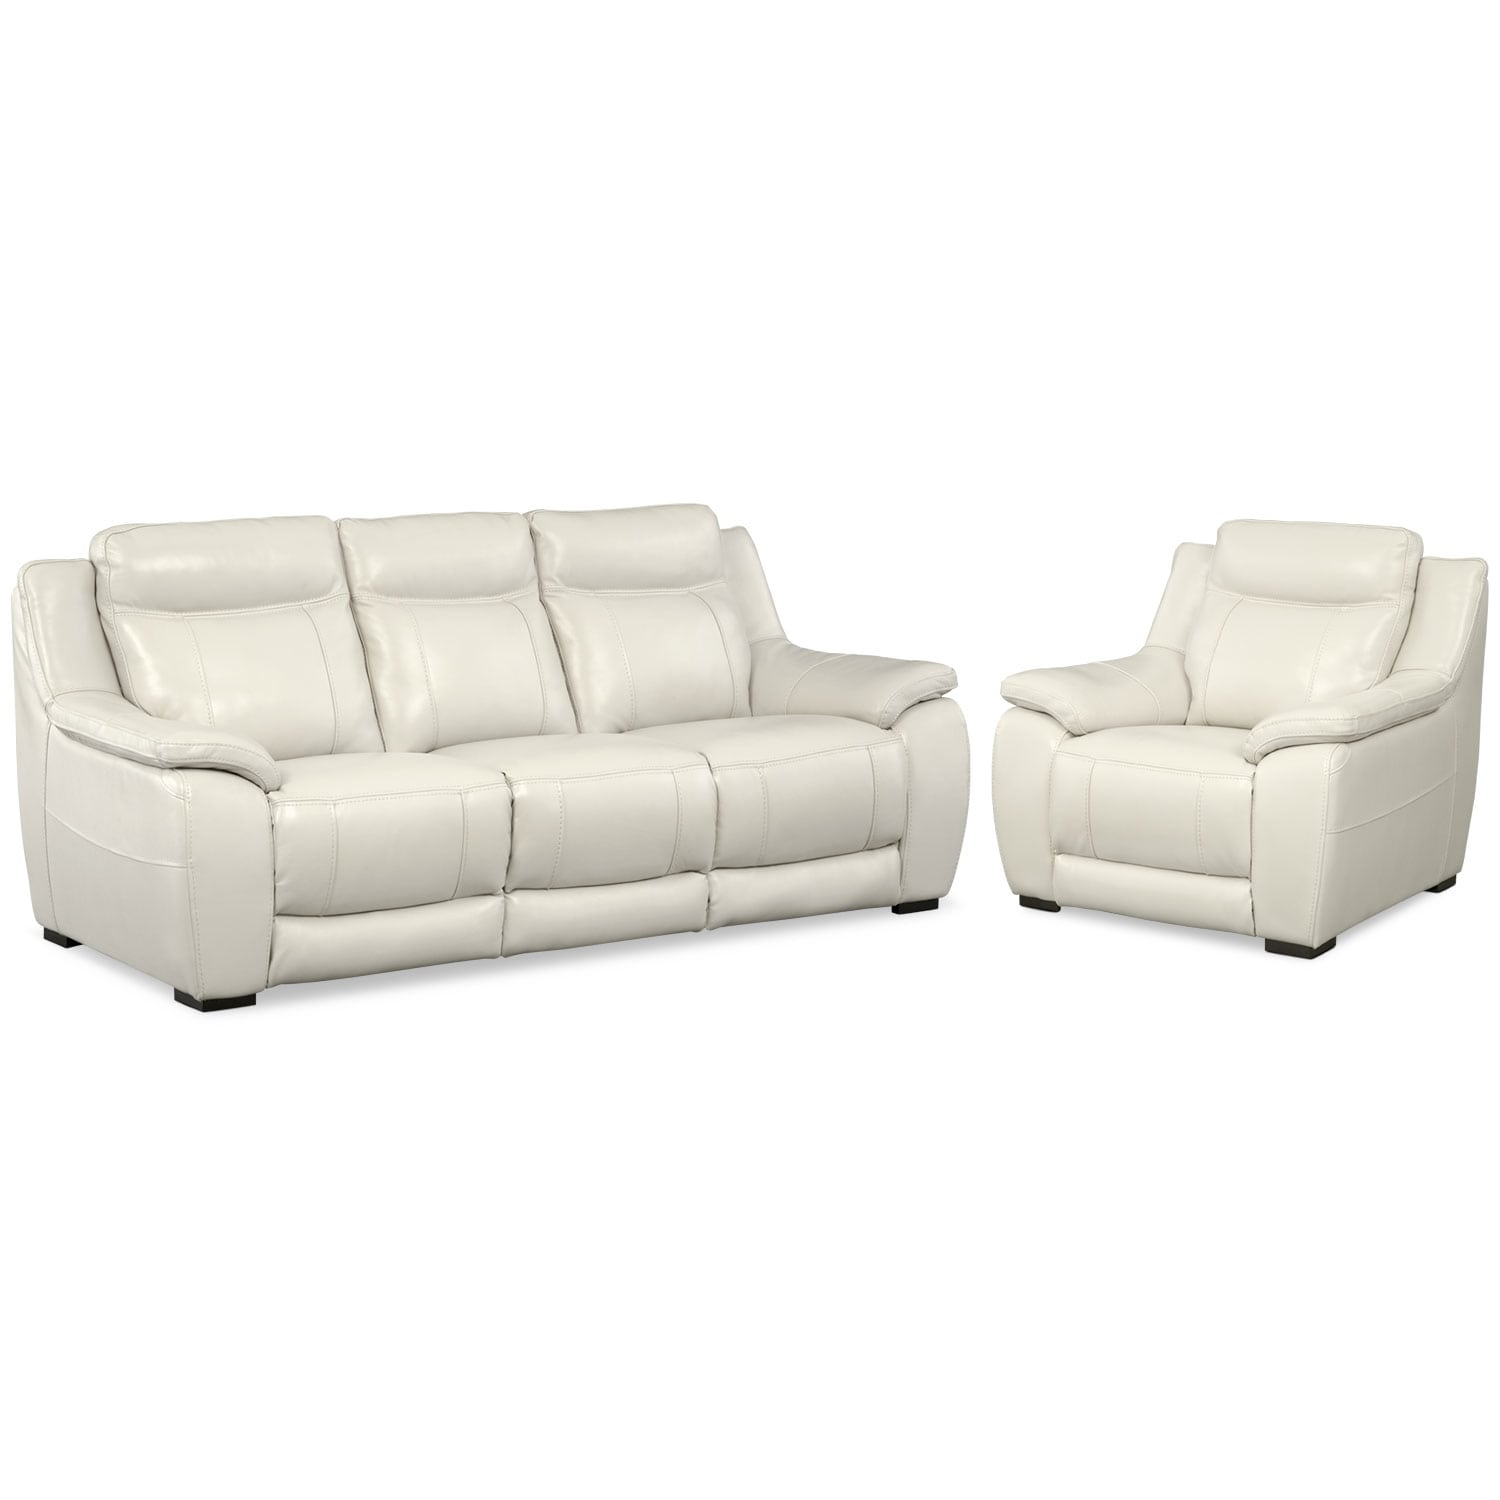 Lido Sofa and Chair Set - Ivory